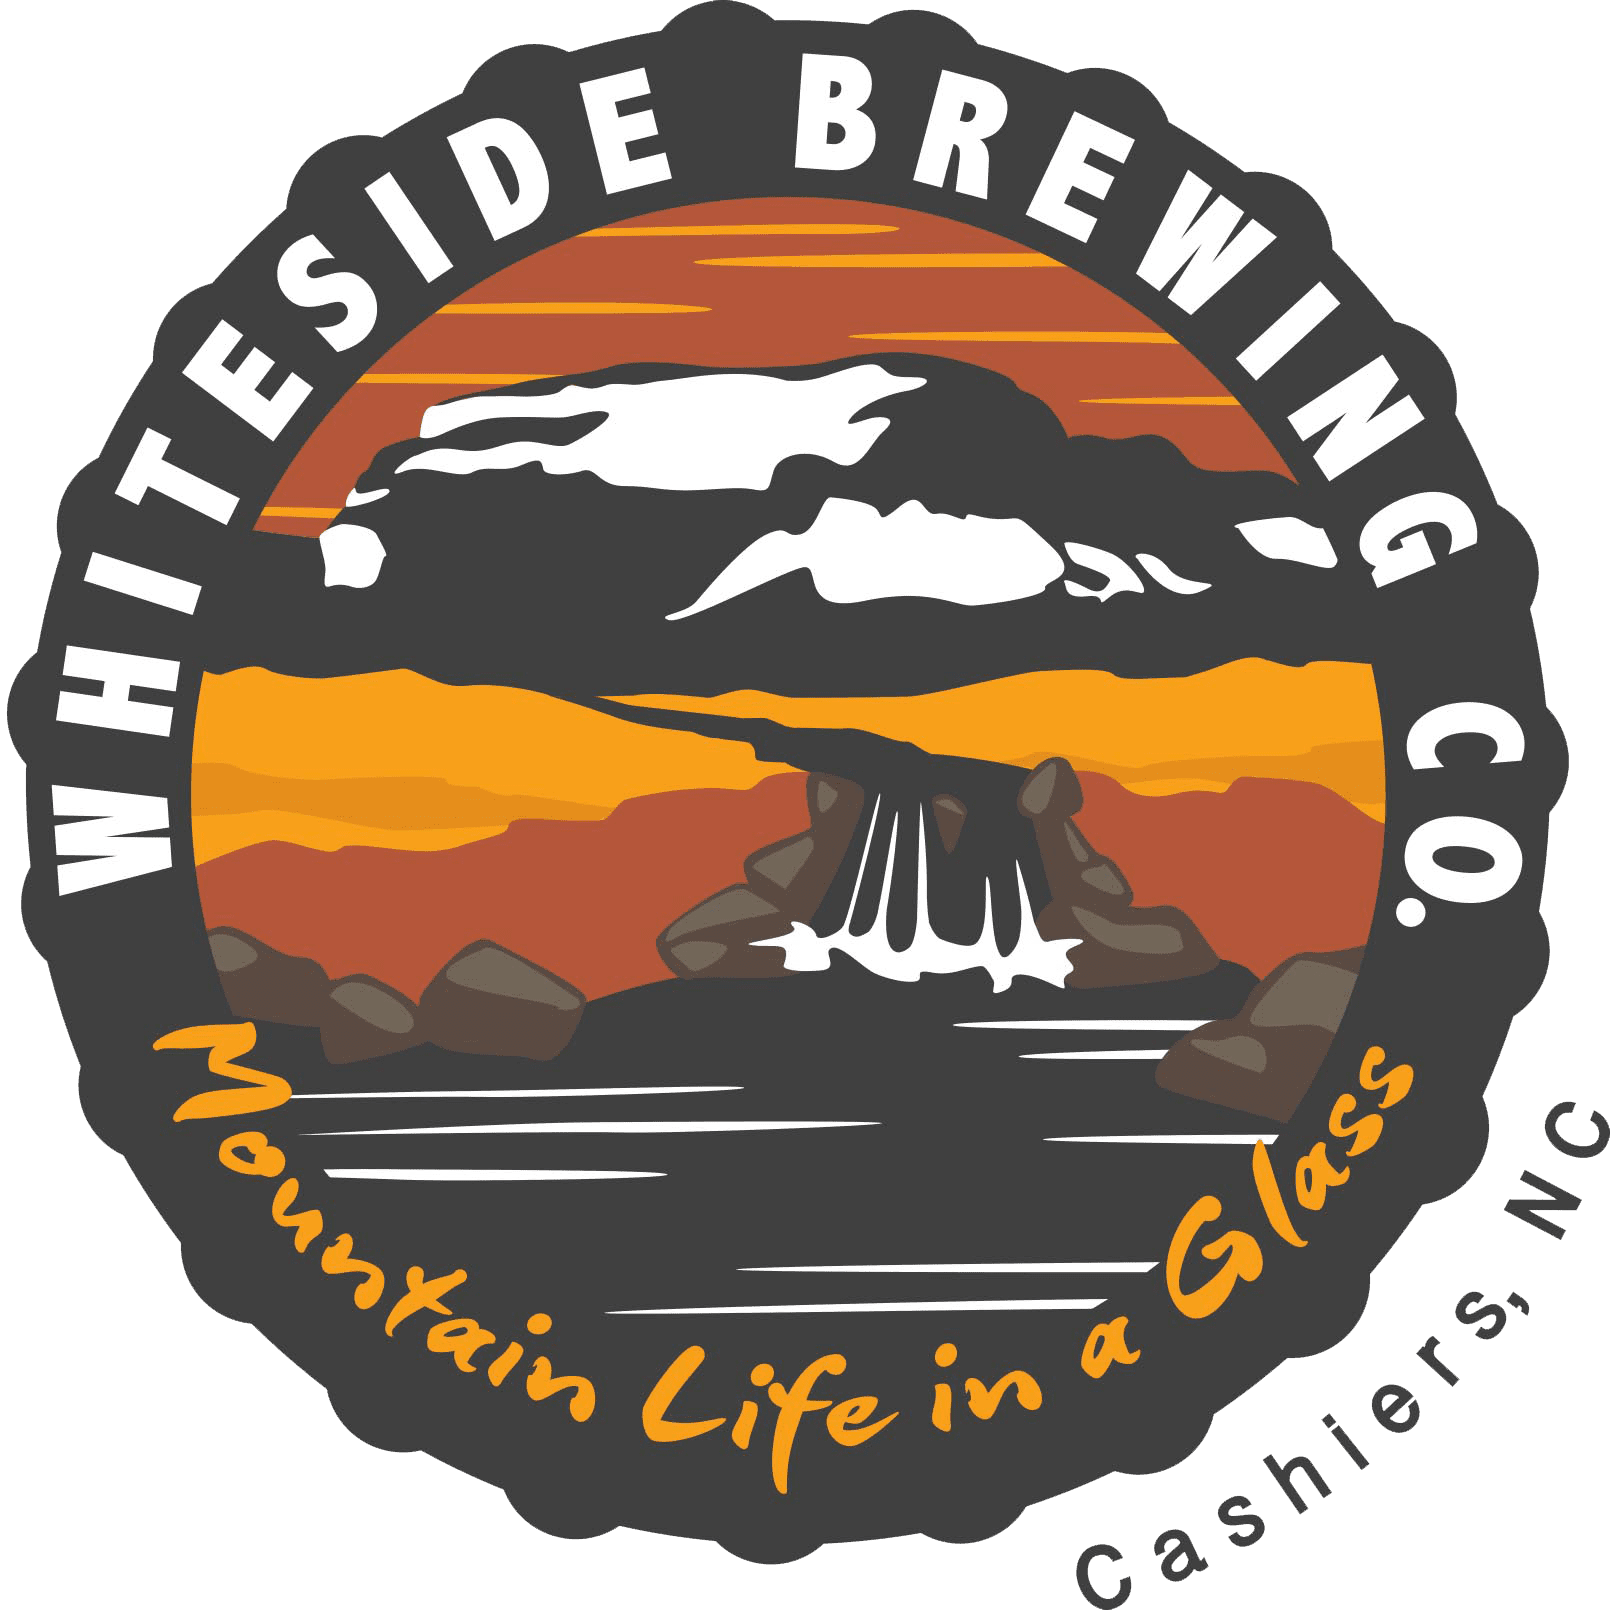 Whiteside Brewing Co.